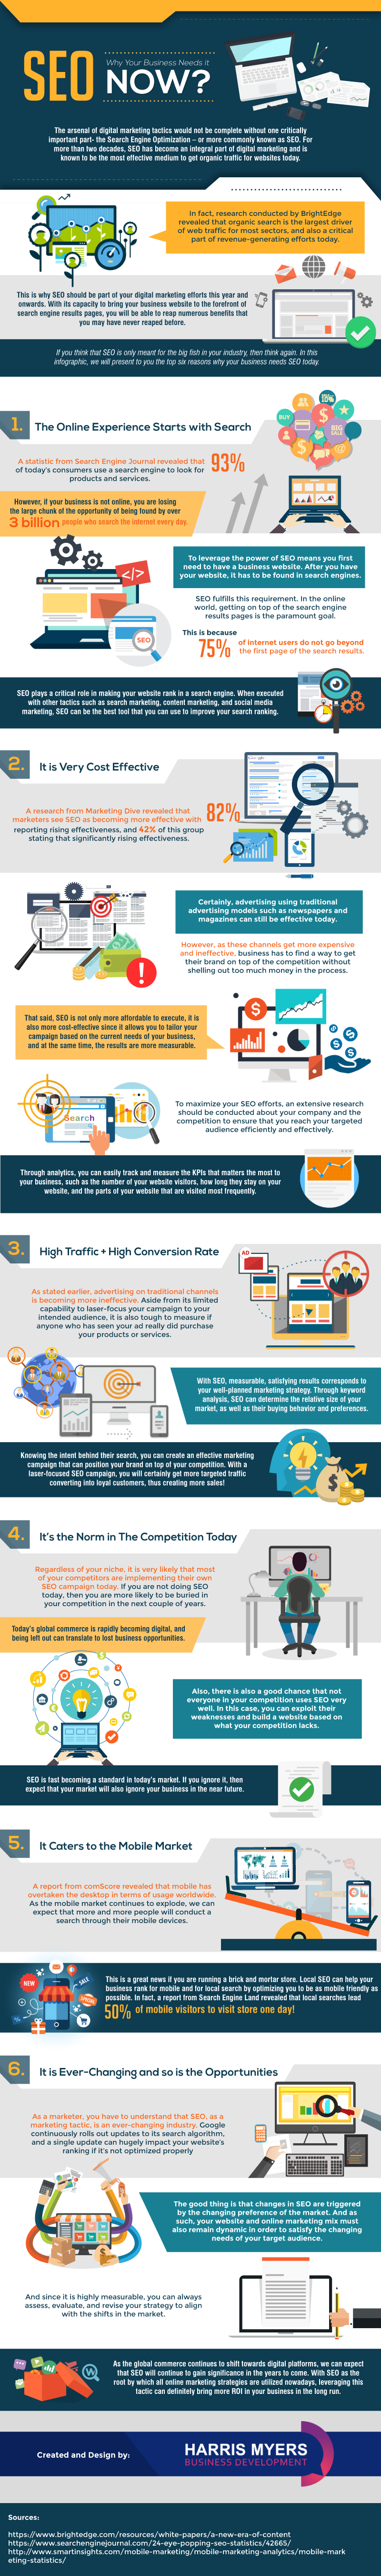 Importance of SEO in Digital Marketing for Business Websites - Infographic